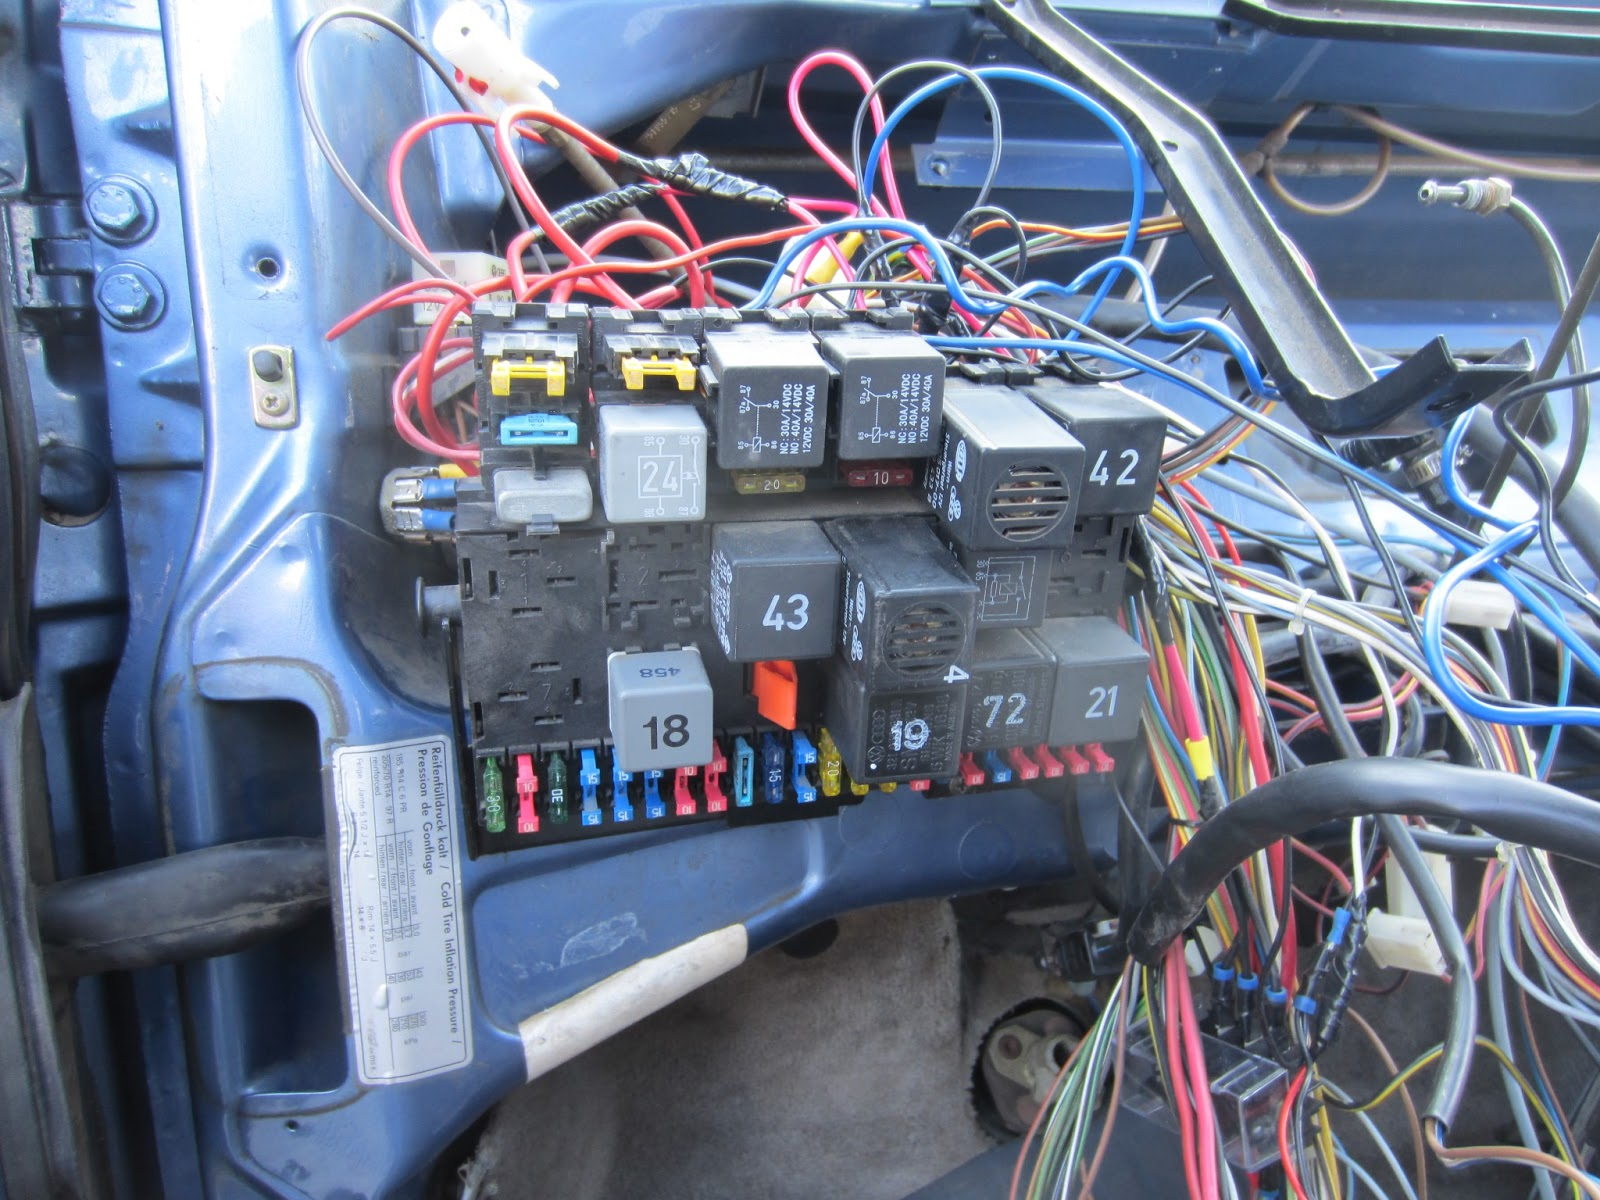 1990 vanagon fuse box diagram 1990 image wiring the volkswagon vanagon diy vw mechanic vanagon heater core on 1990 vanagon fuse box diagram